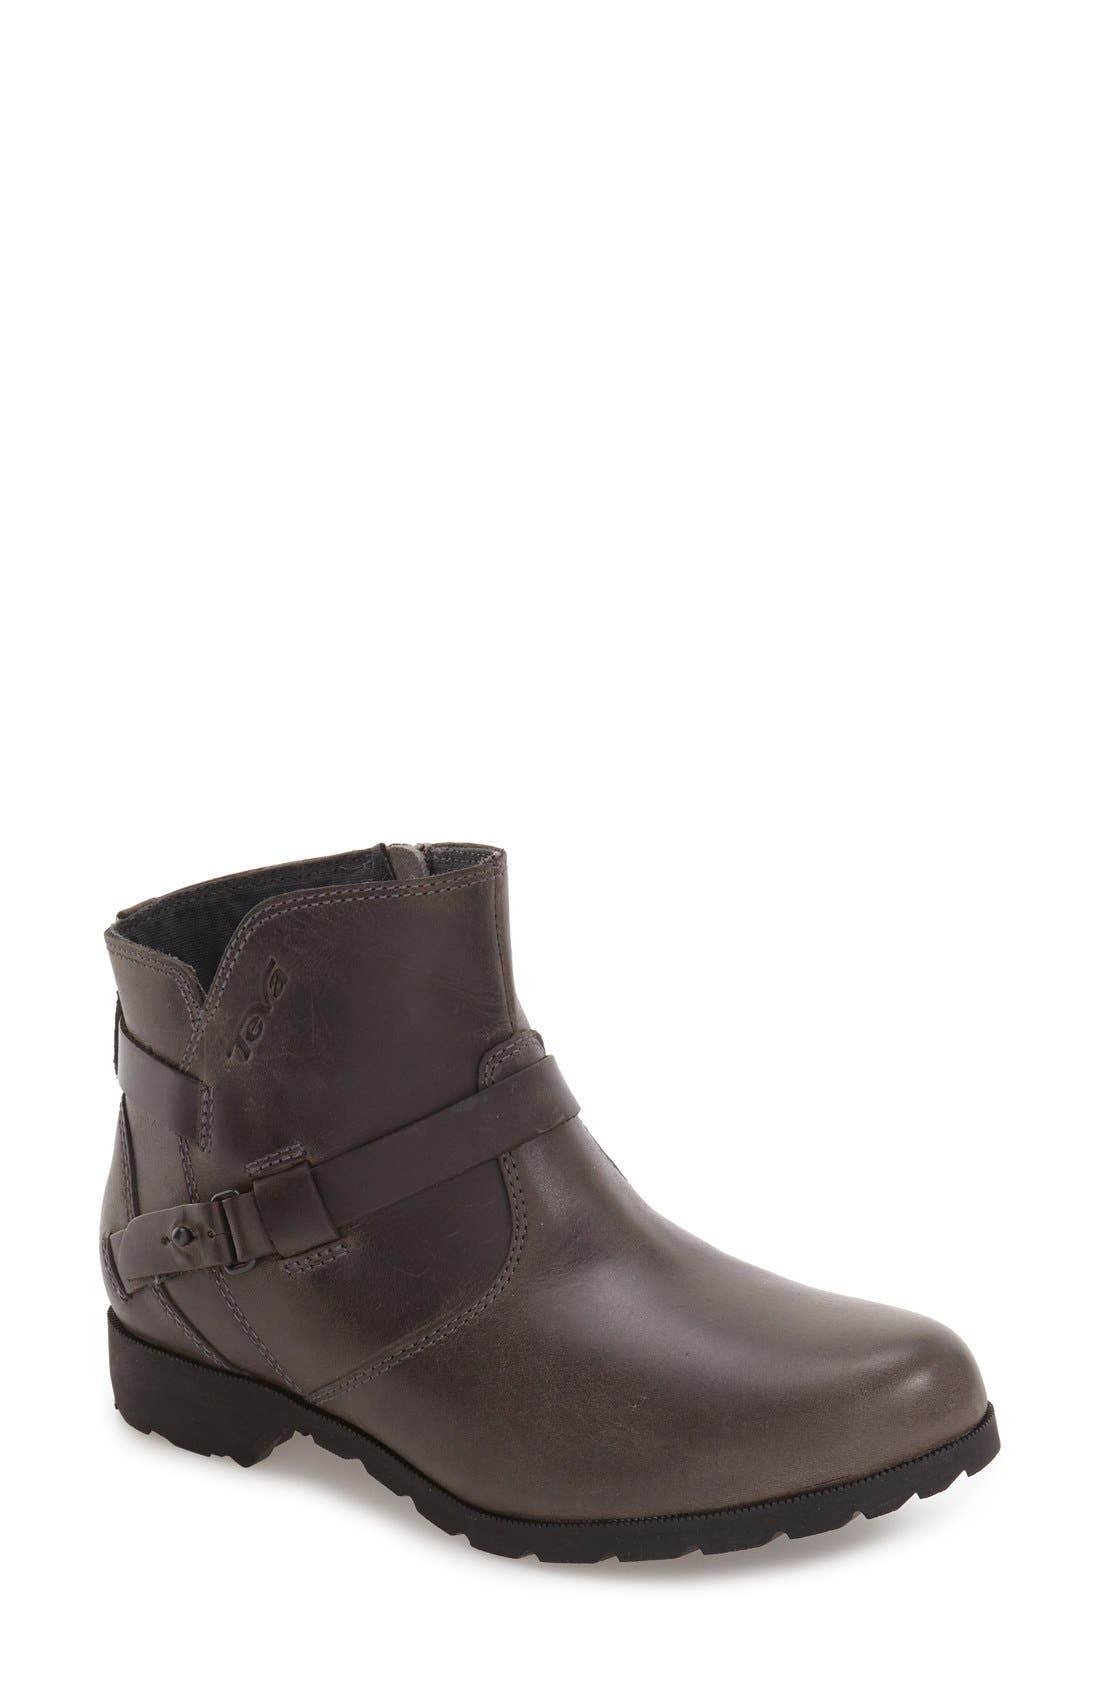 Teva 'Delavina' Waterproof Bootie (Women)